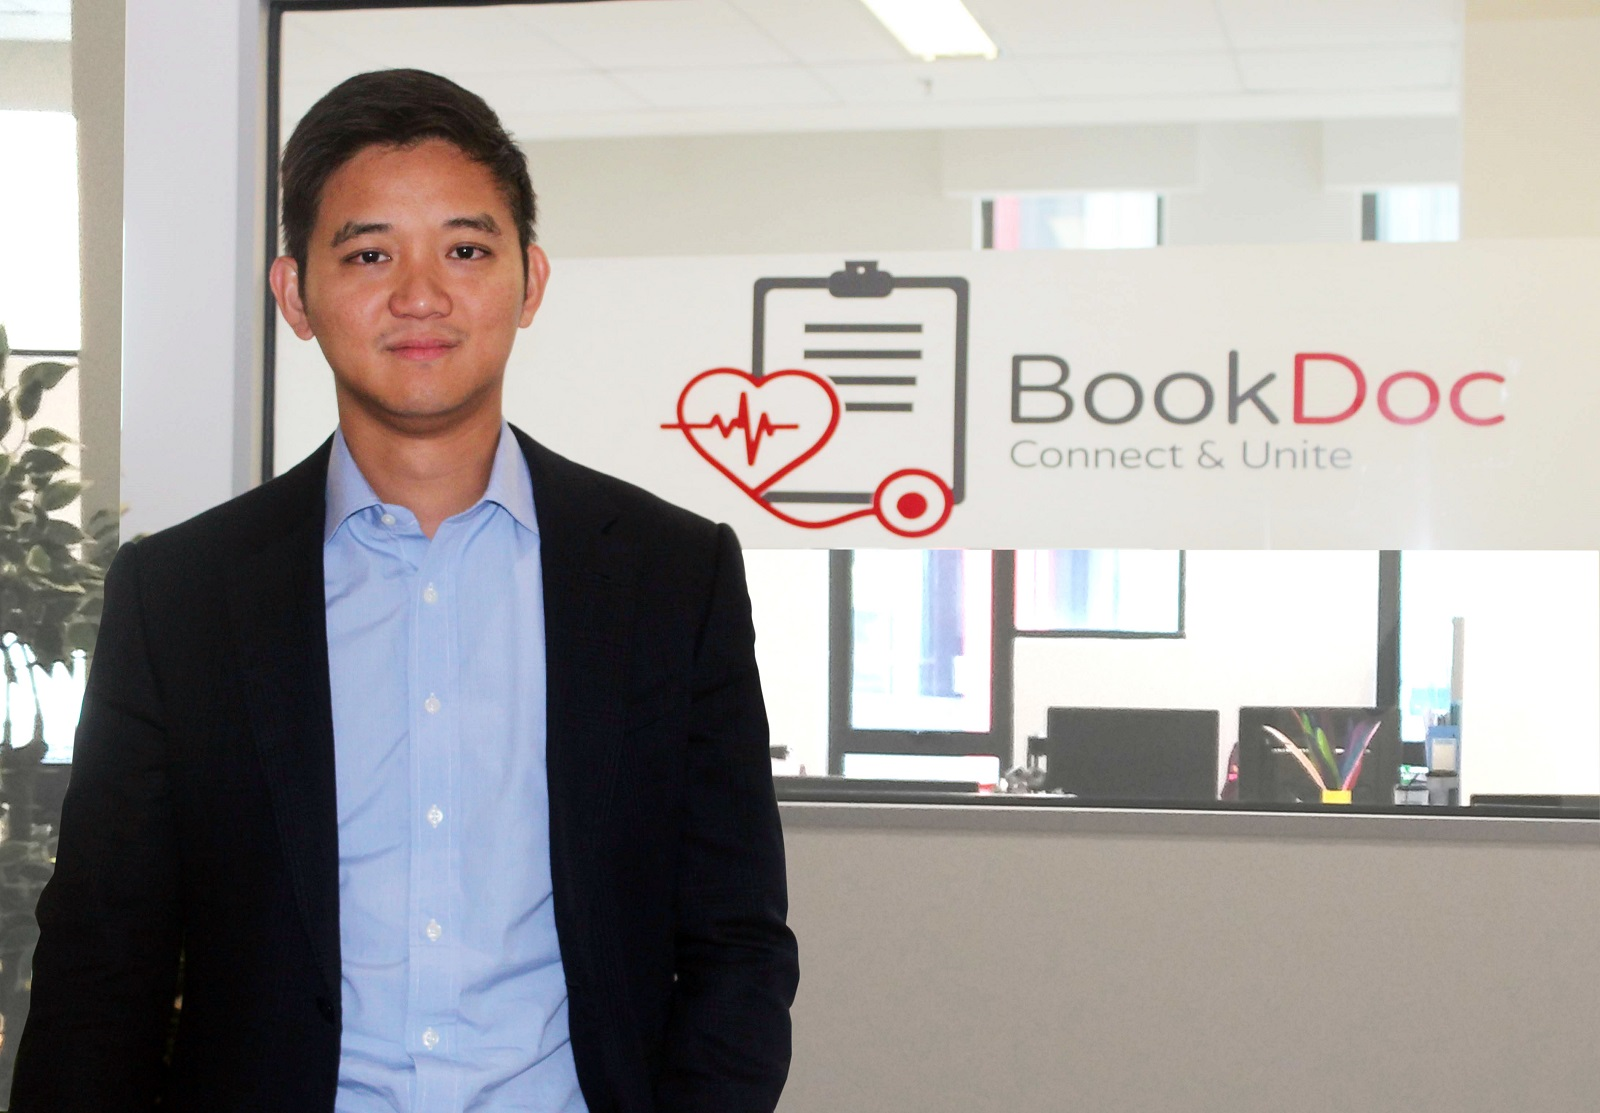 BookDoc sees a healthy start to growth in the region